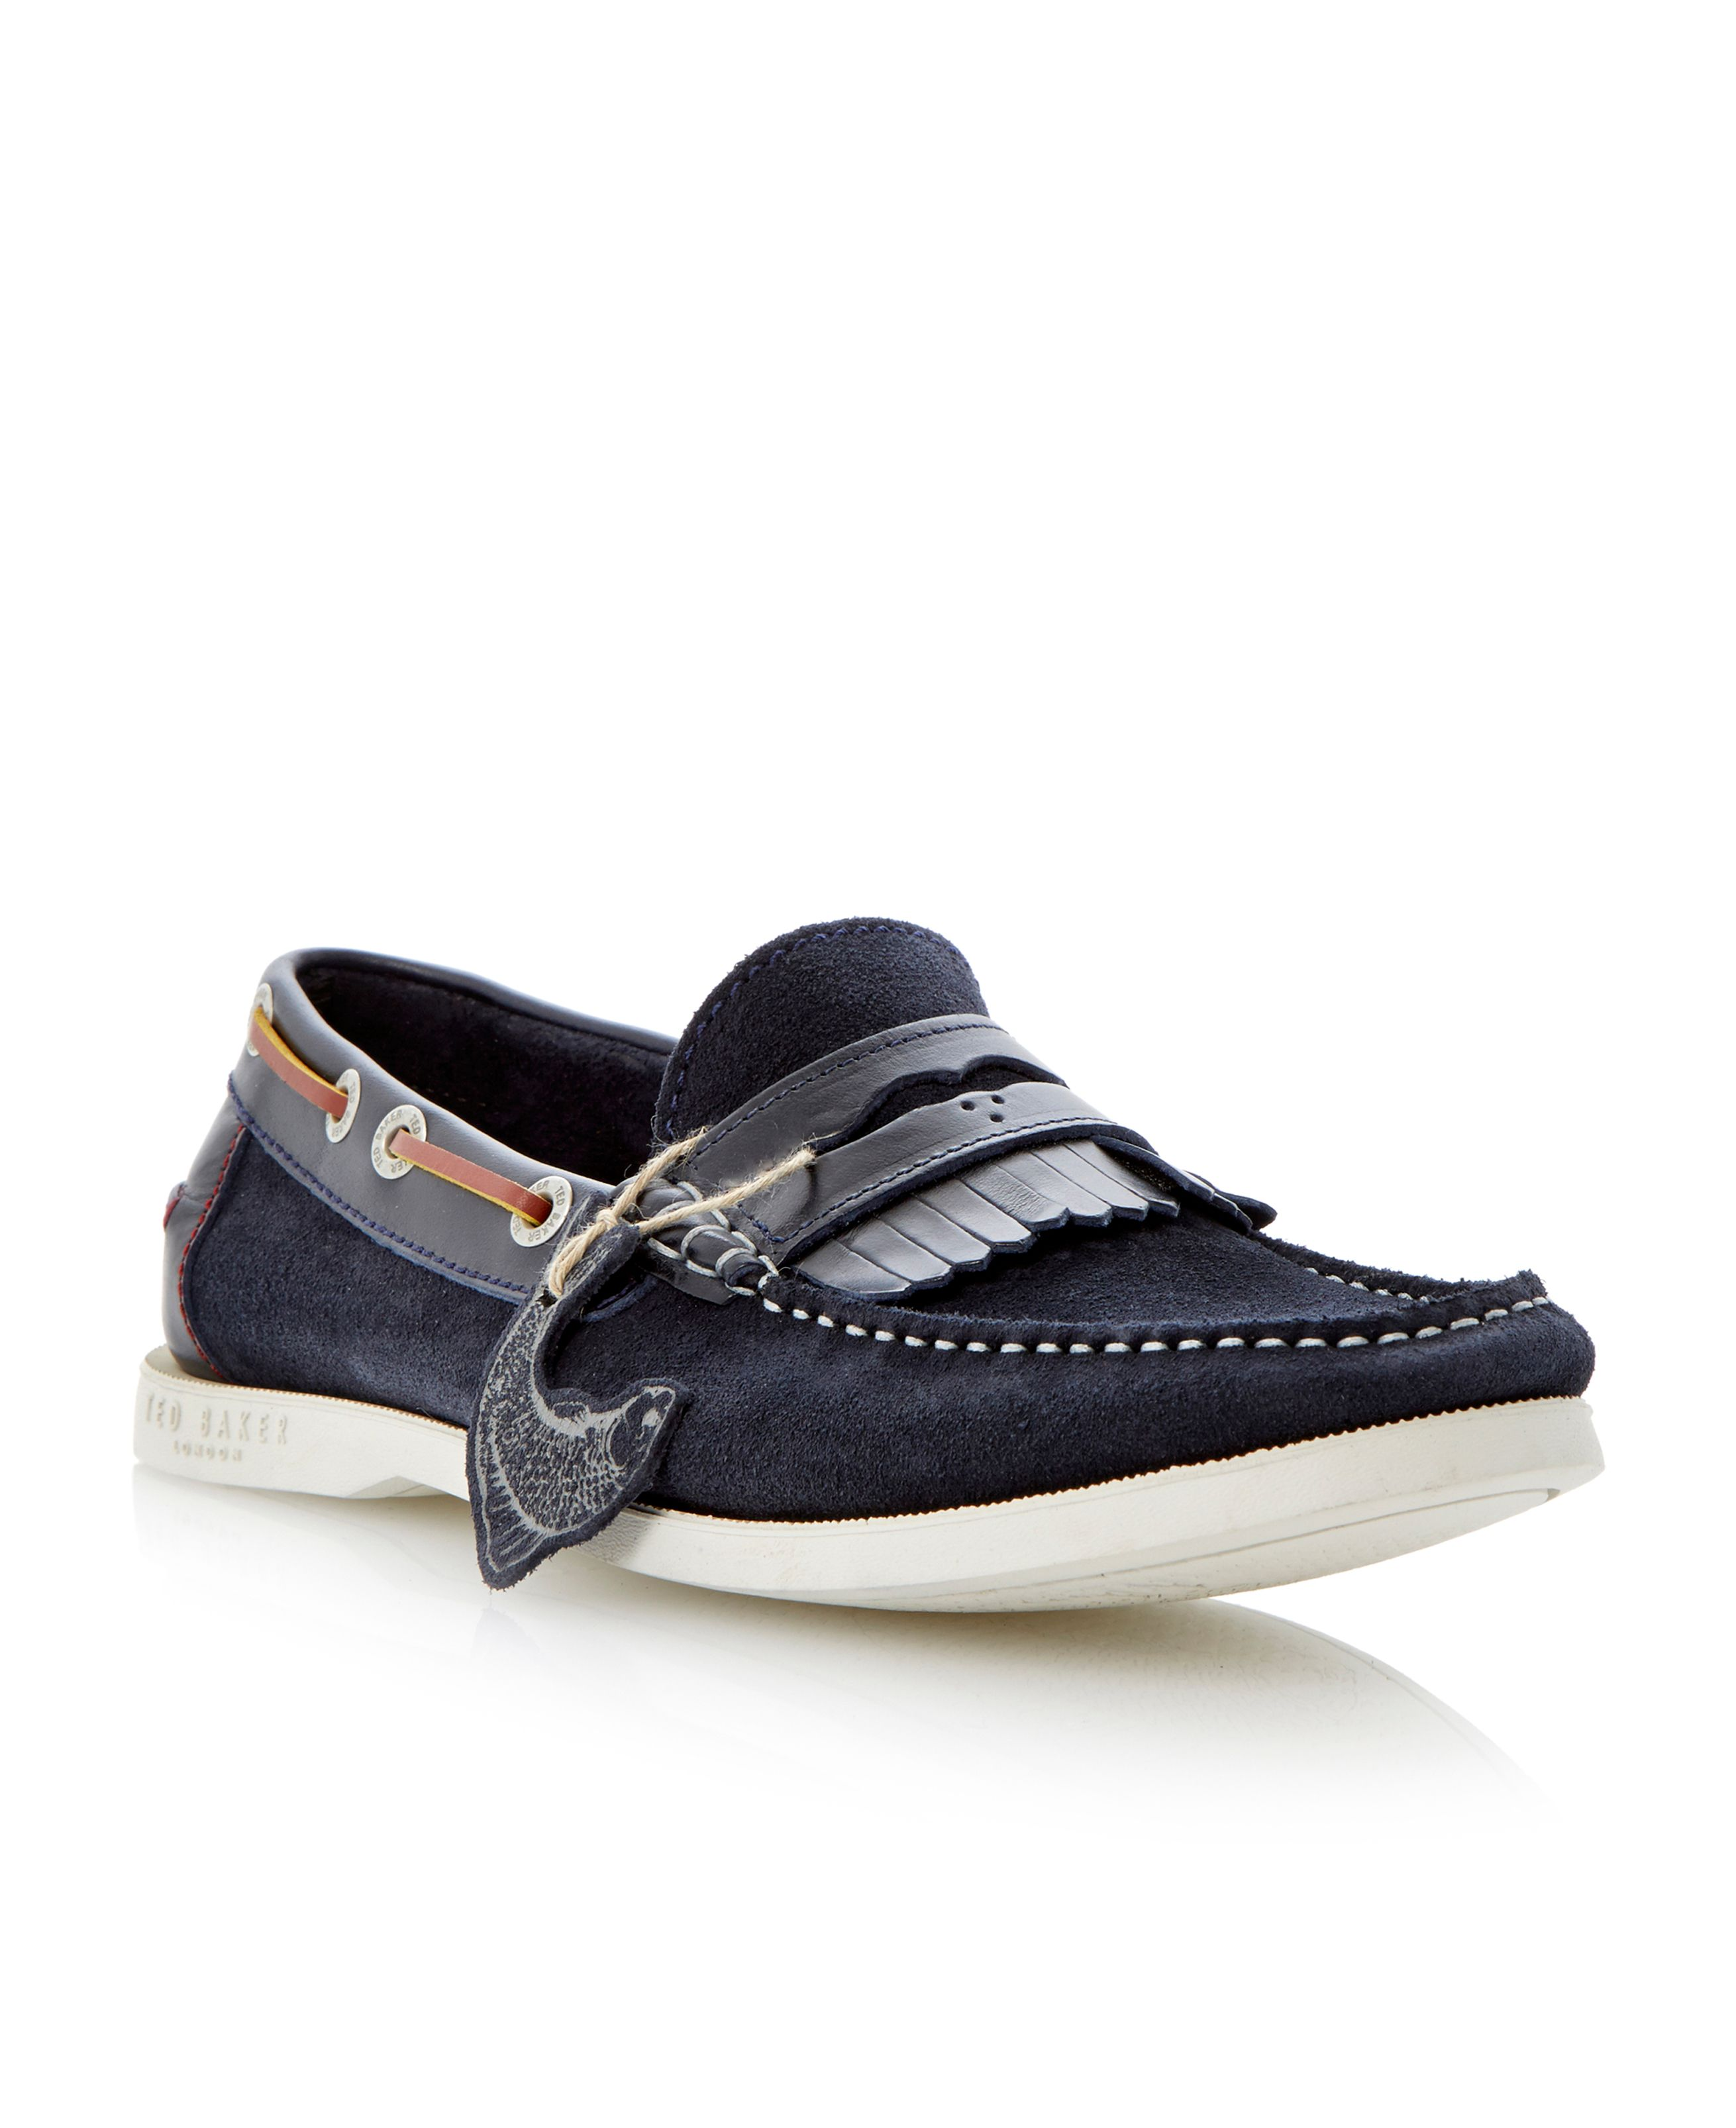 Waave fringe saddle loafers